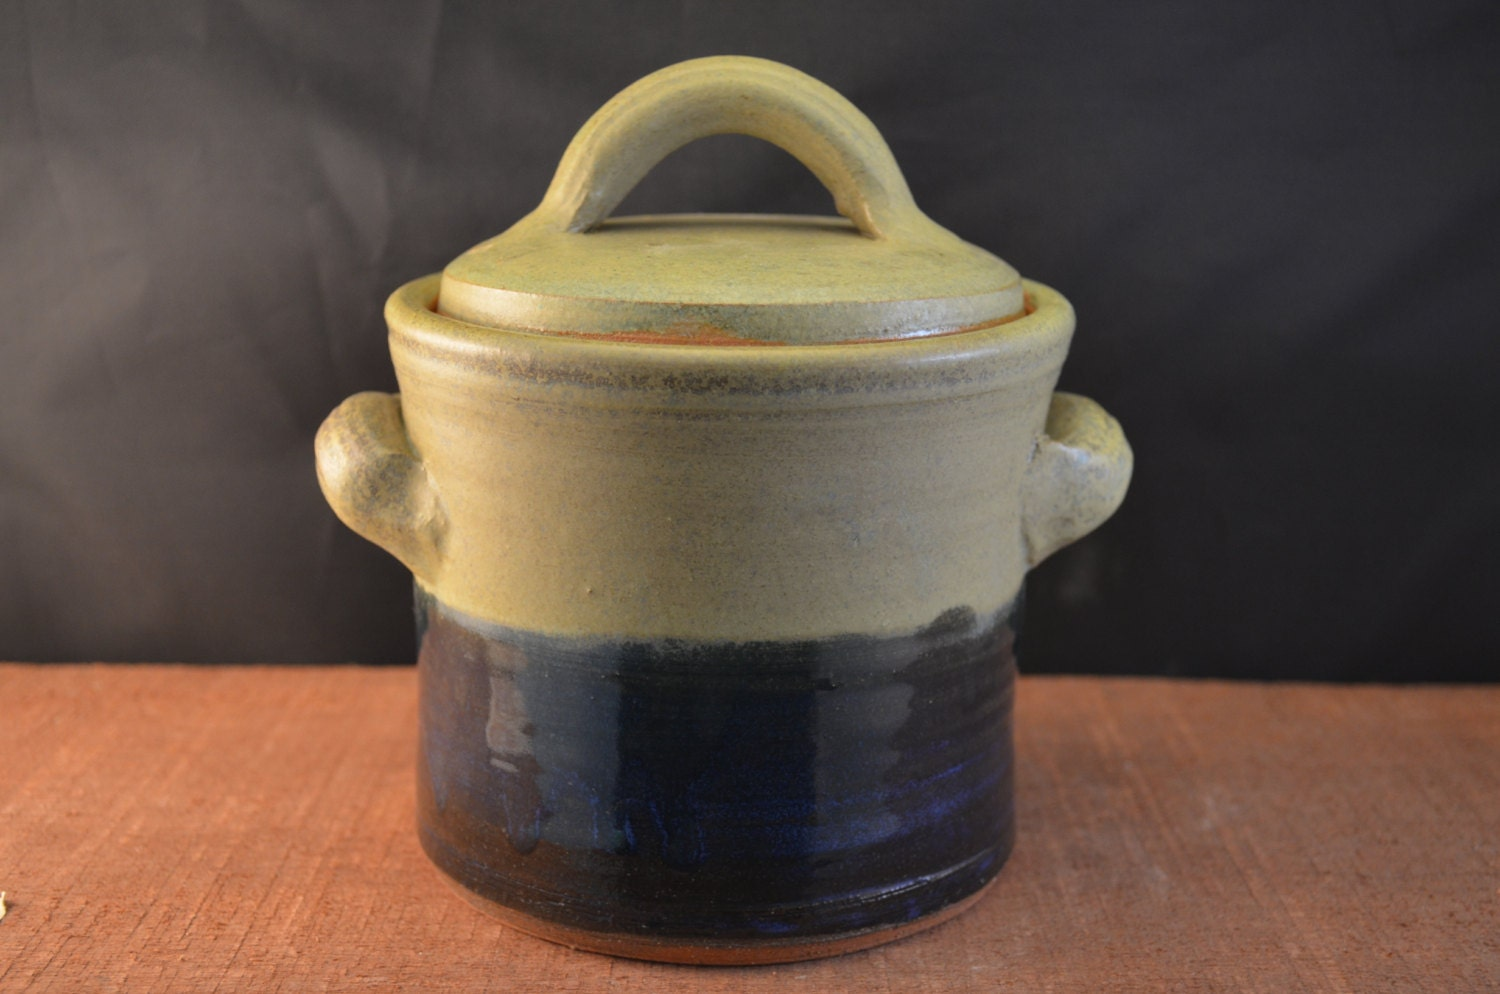 Handmade Ceramic Canister, Cookie Jar, Lidded Kitchen Storage with Handles - Medium - Moss Green and Indigo Blue